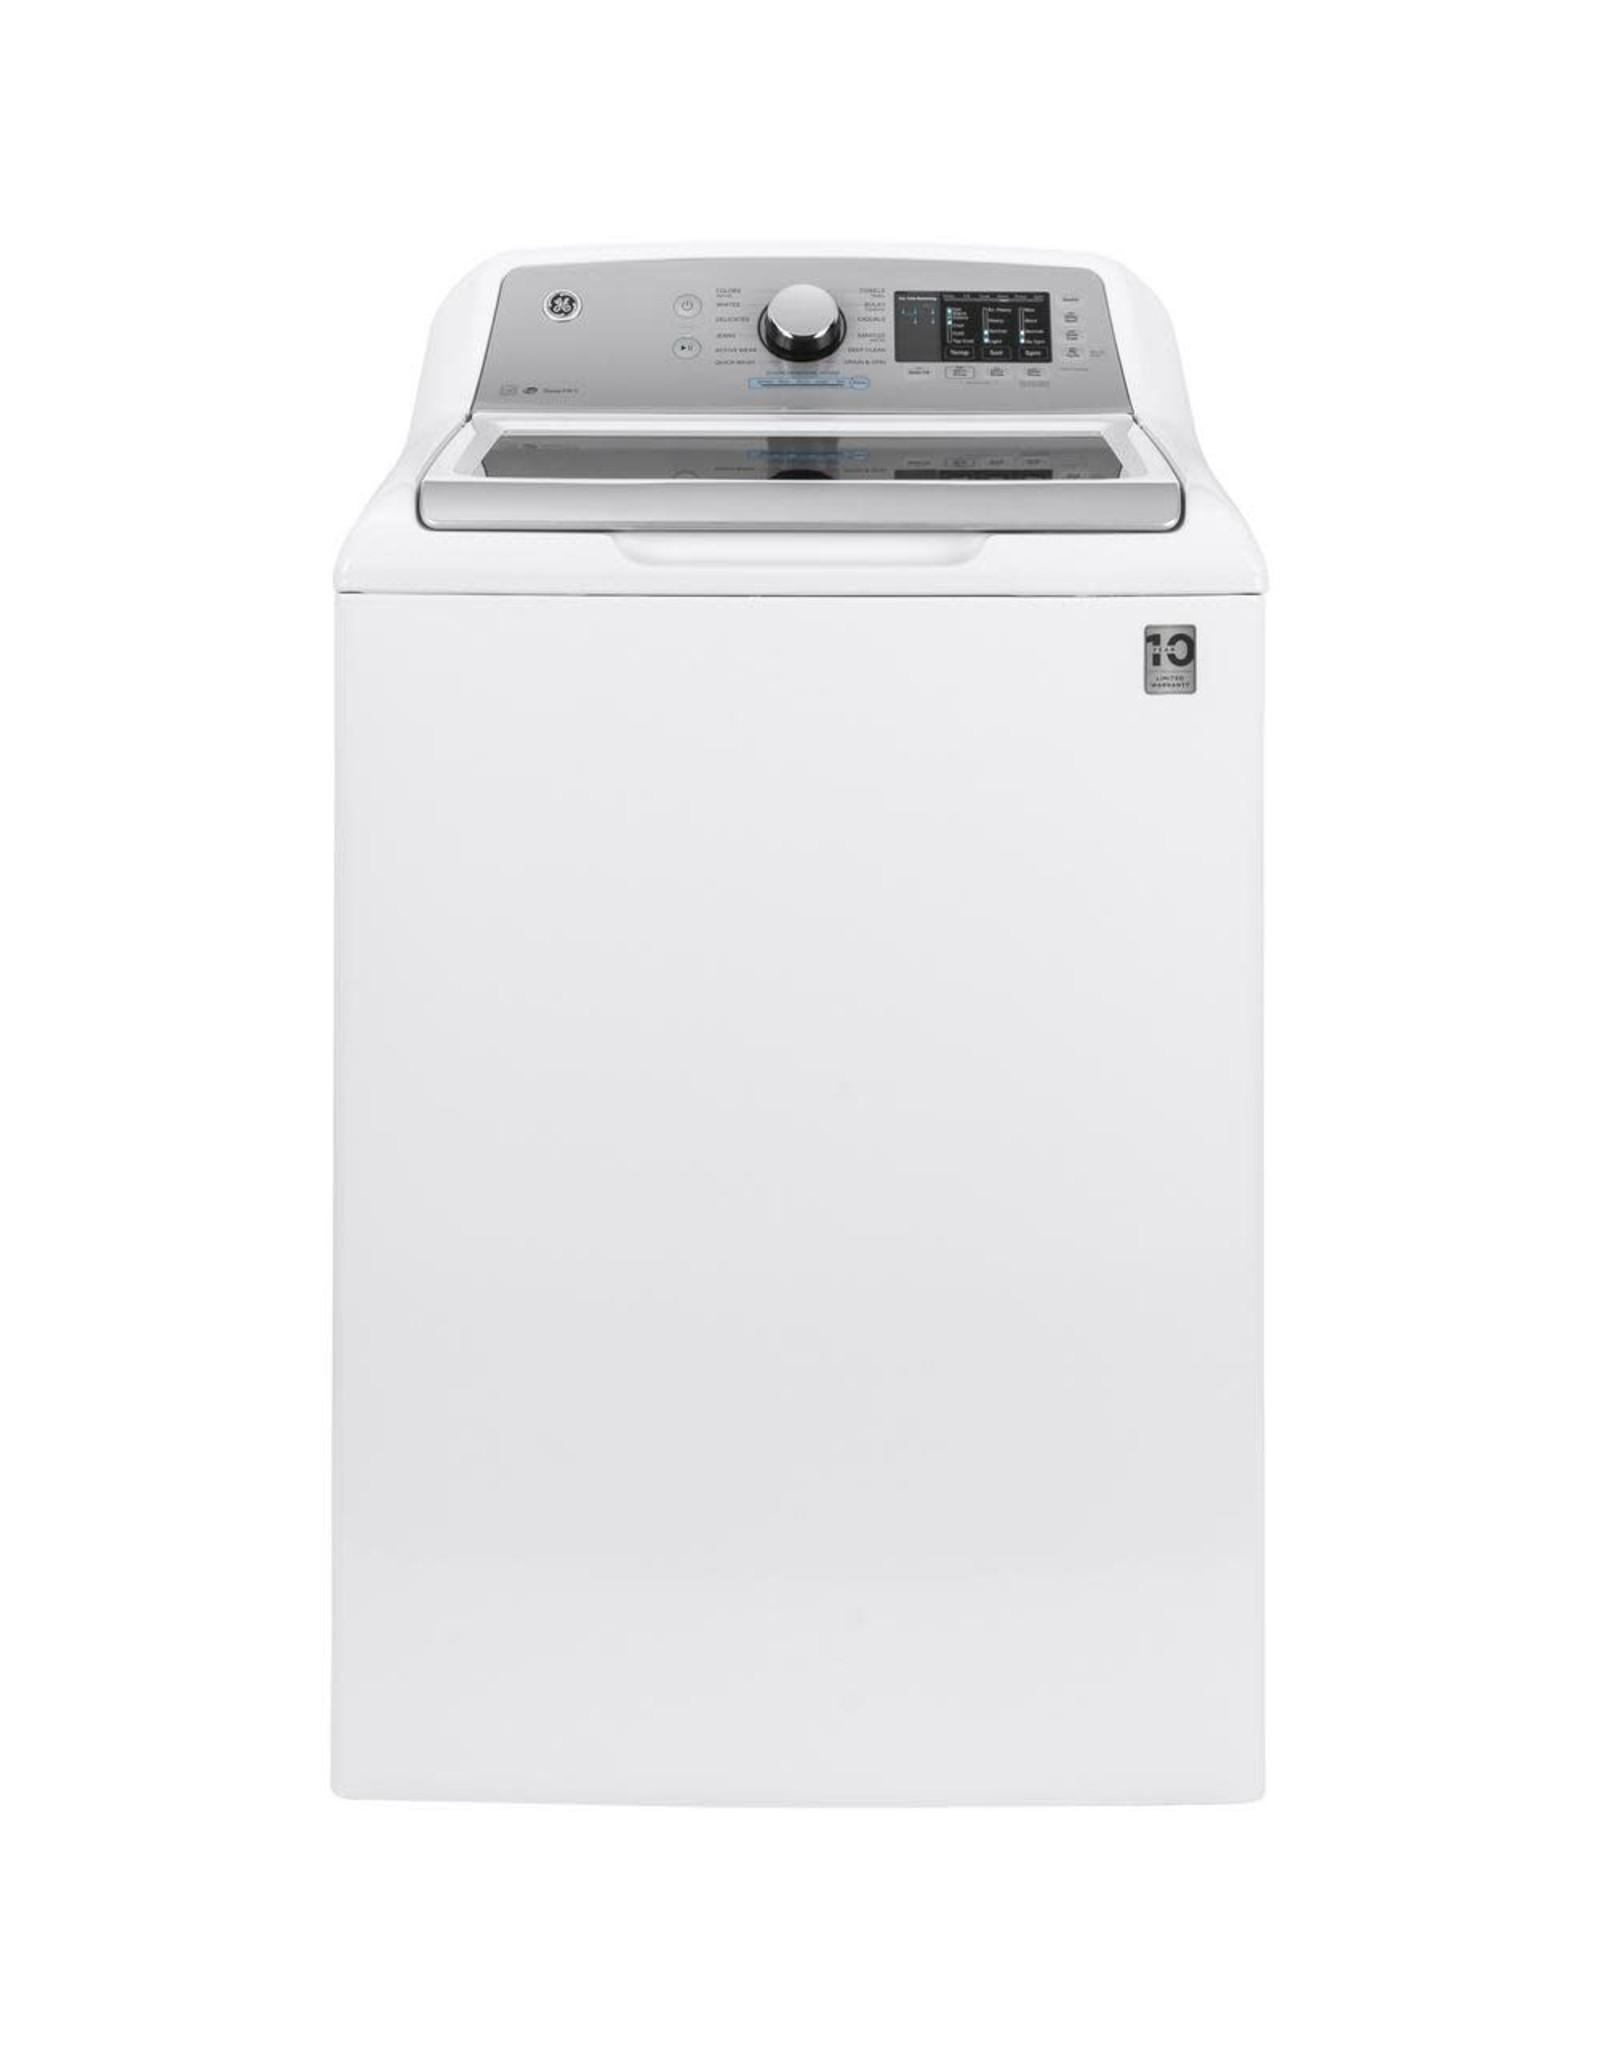 GE GTW720BSNWS 4.8 cu. ft. High-Efficiency White Top Load Washing Machine with FlexDispense and Sanitize with Oxi, ENERGY STAR